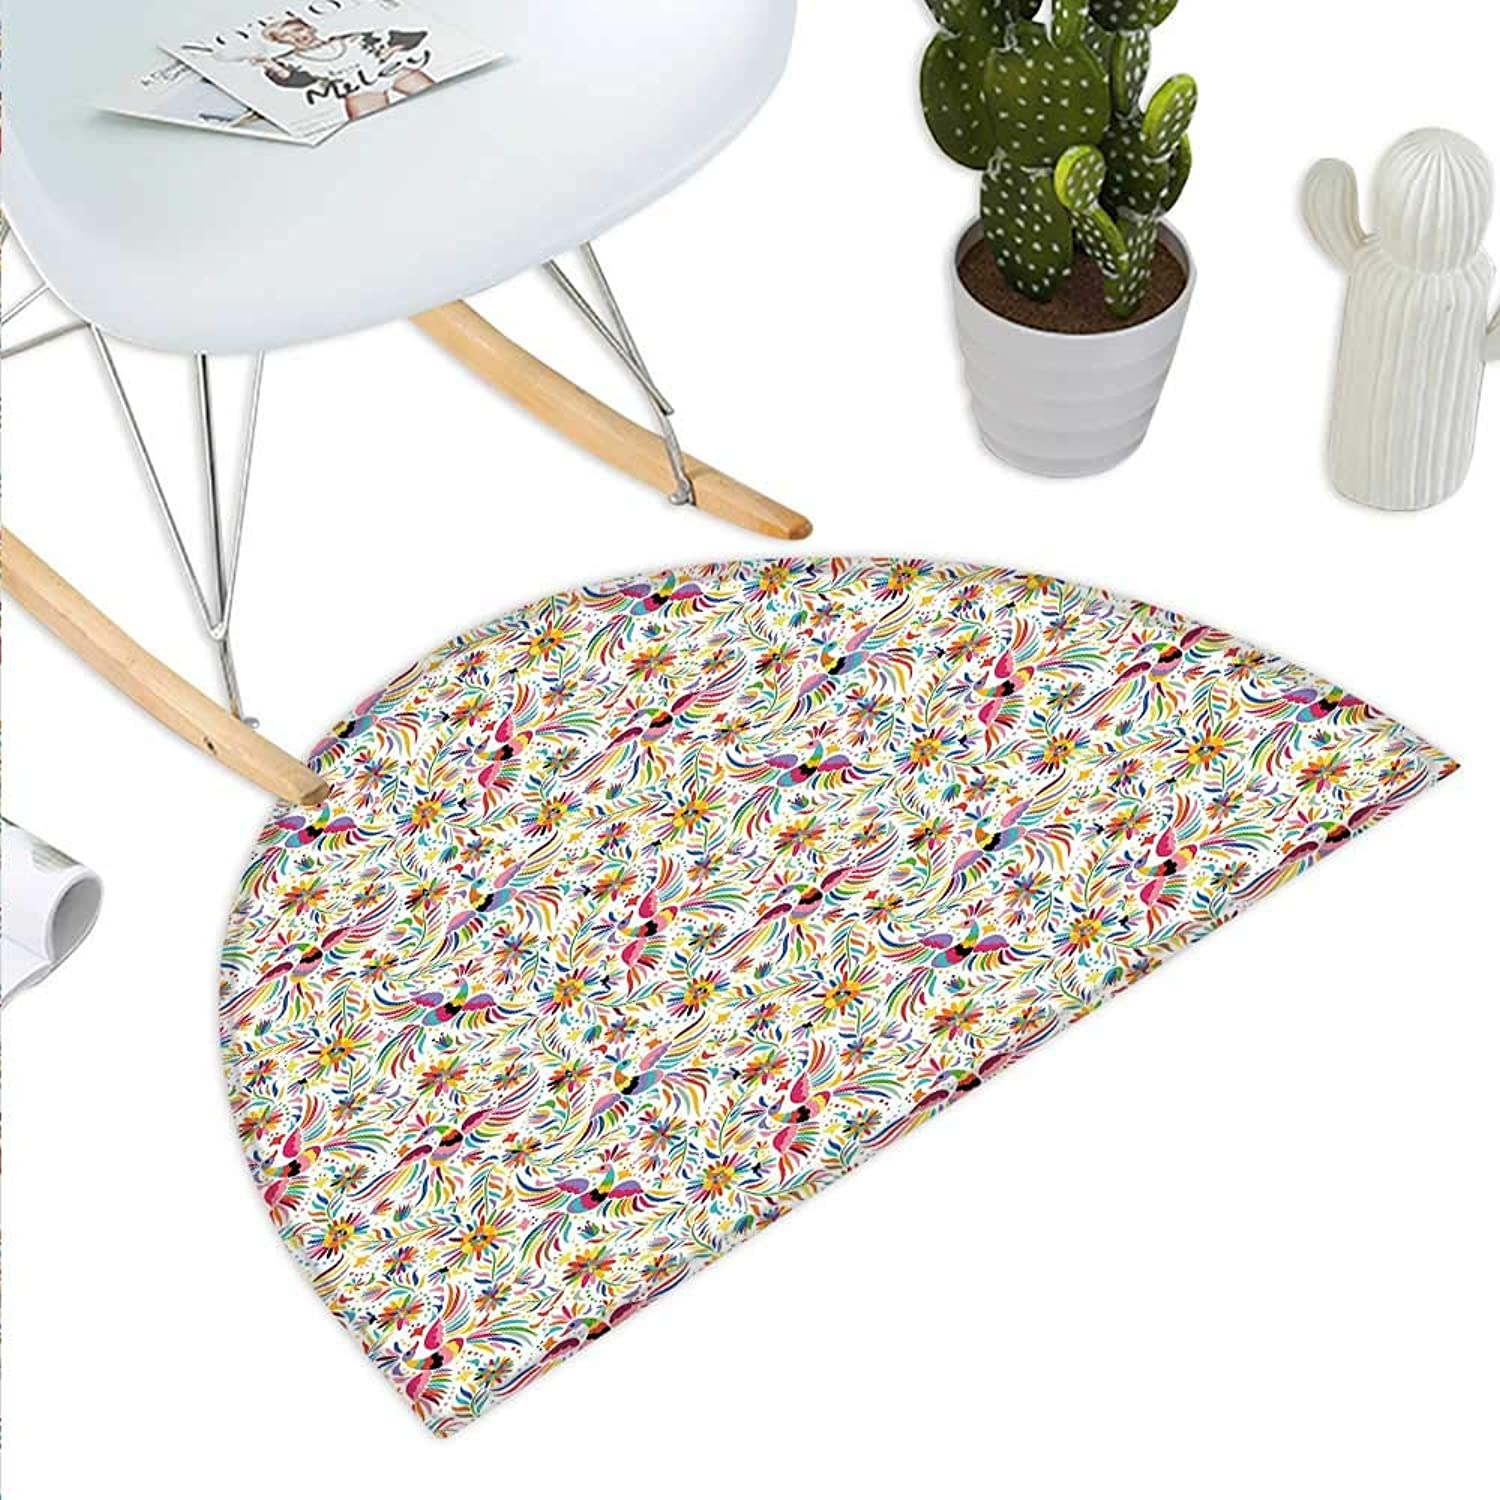 Mexican Semicircle Doormat colorful Nature Inspired Ethnic Pattern Birds Flowers Leaves and Dots Creativity Halfmoon doormats H 39.3  xD 59  Multicolor